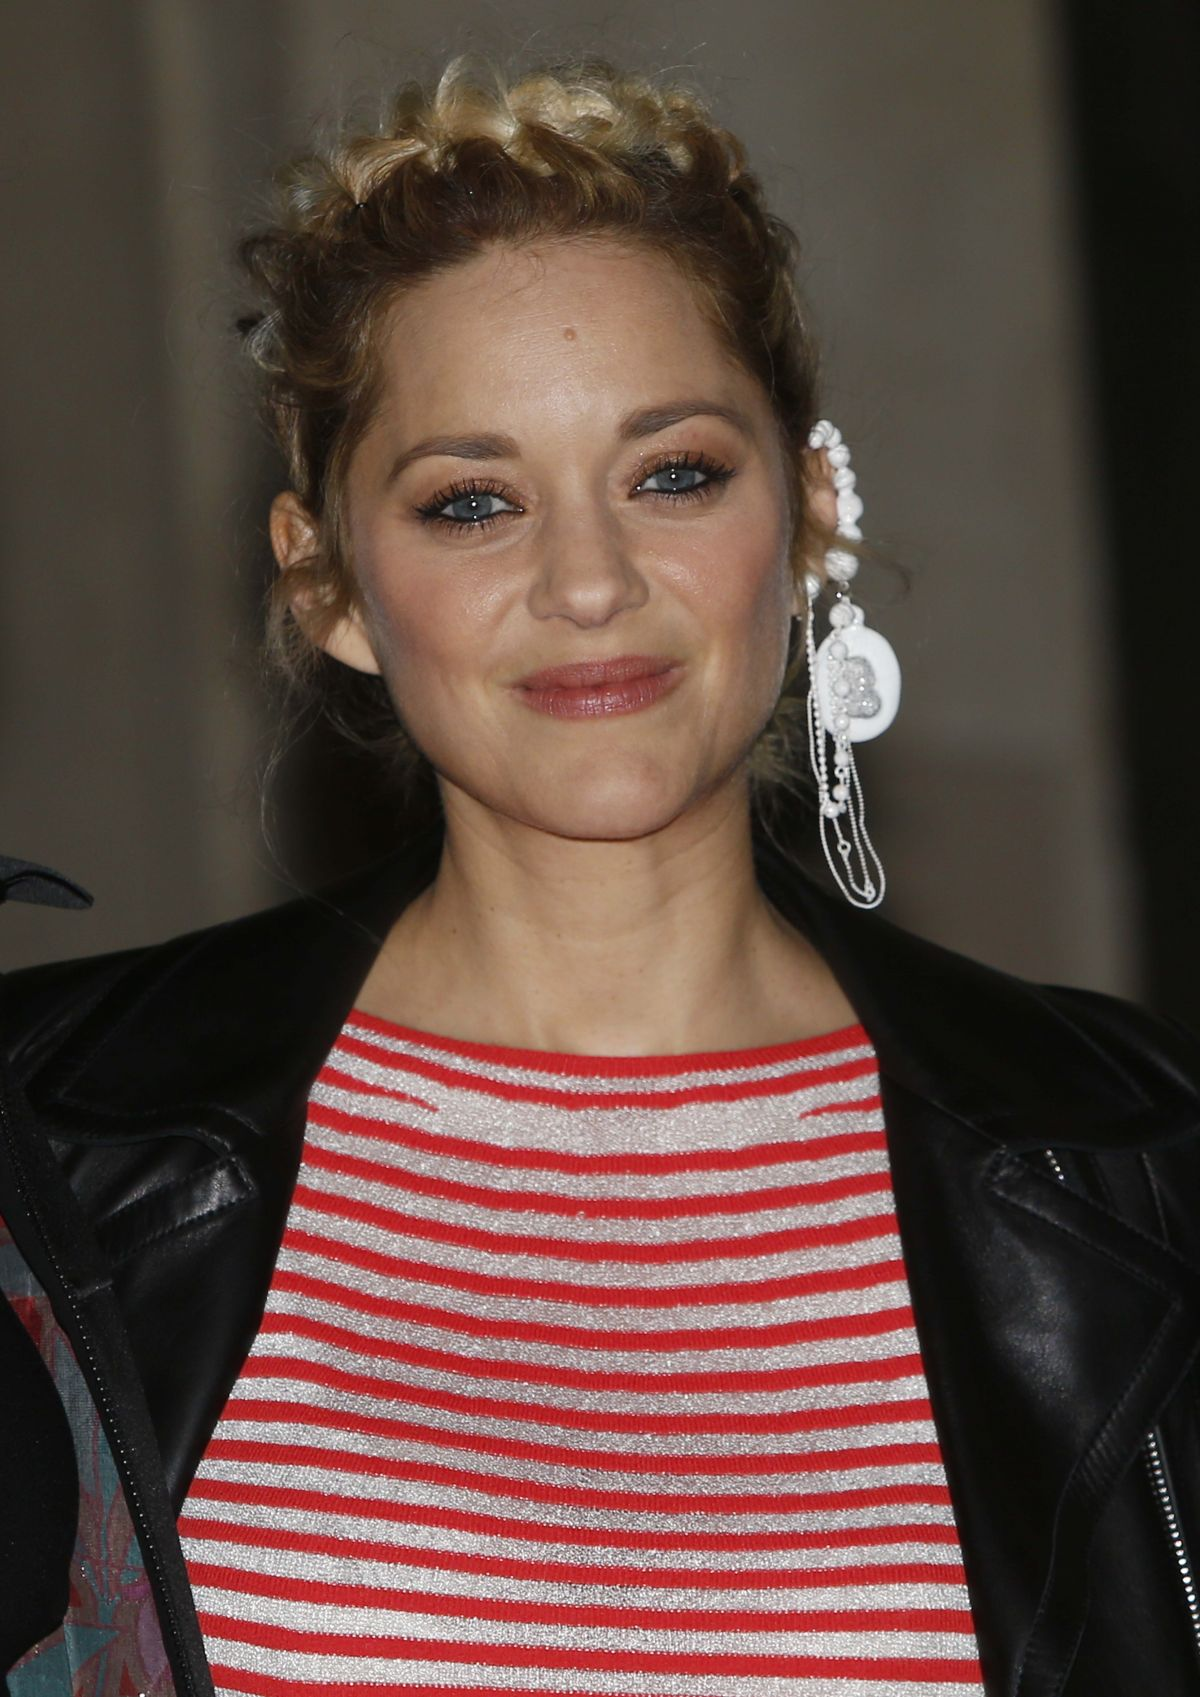 MARION COTILLARD at Giorgio Armani Prive Show at 2018 ...